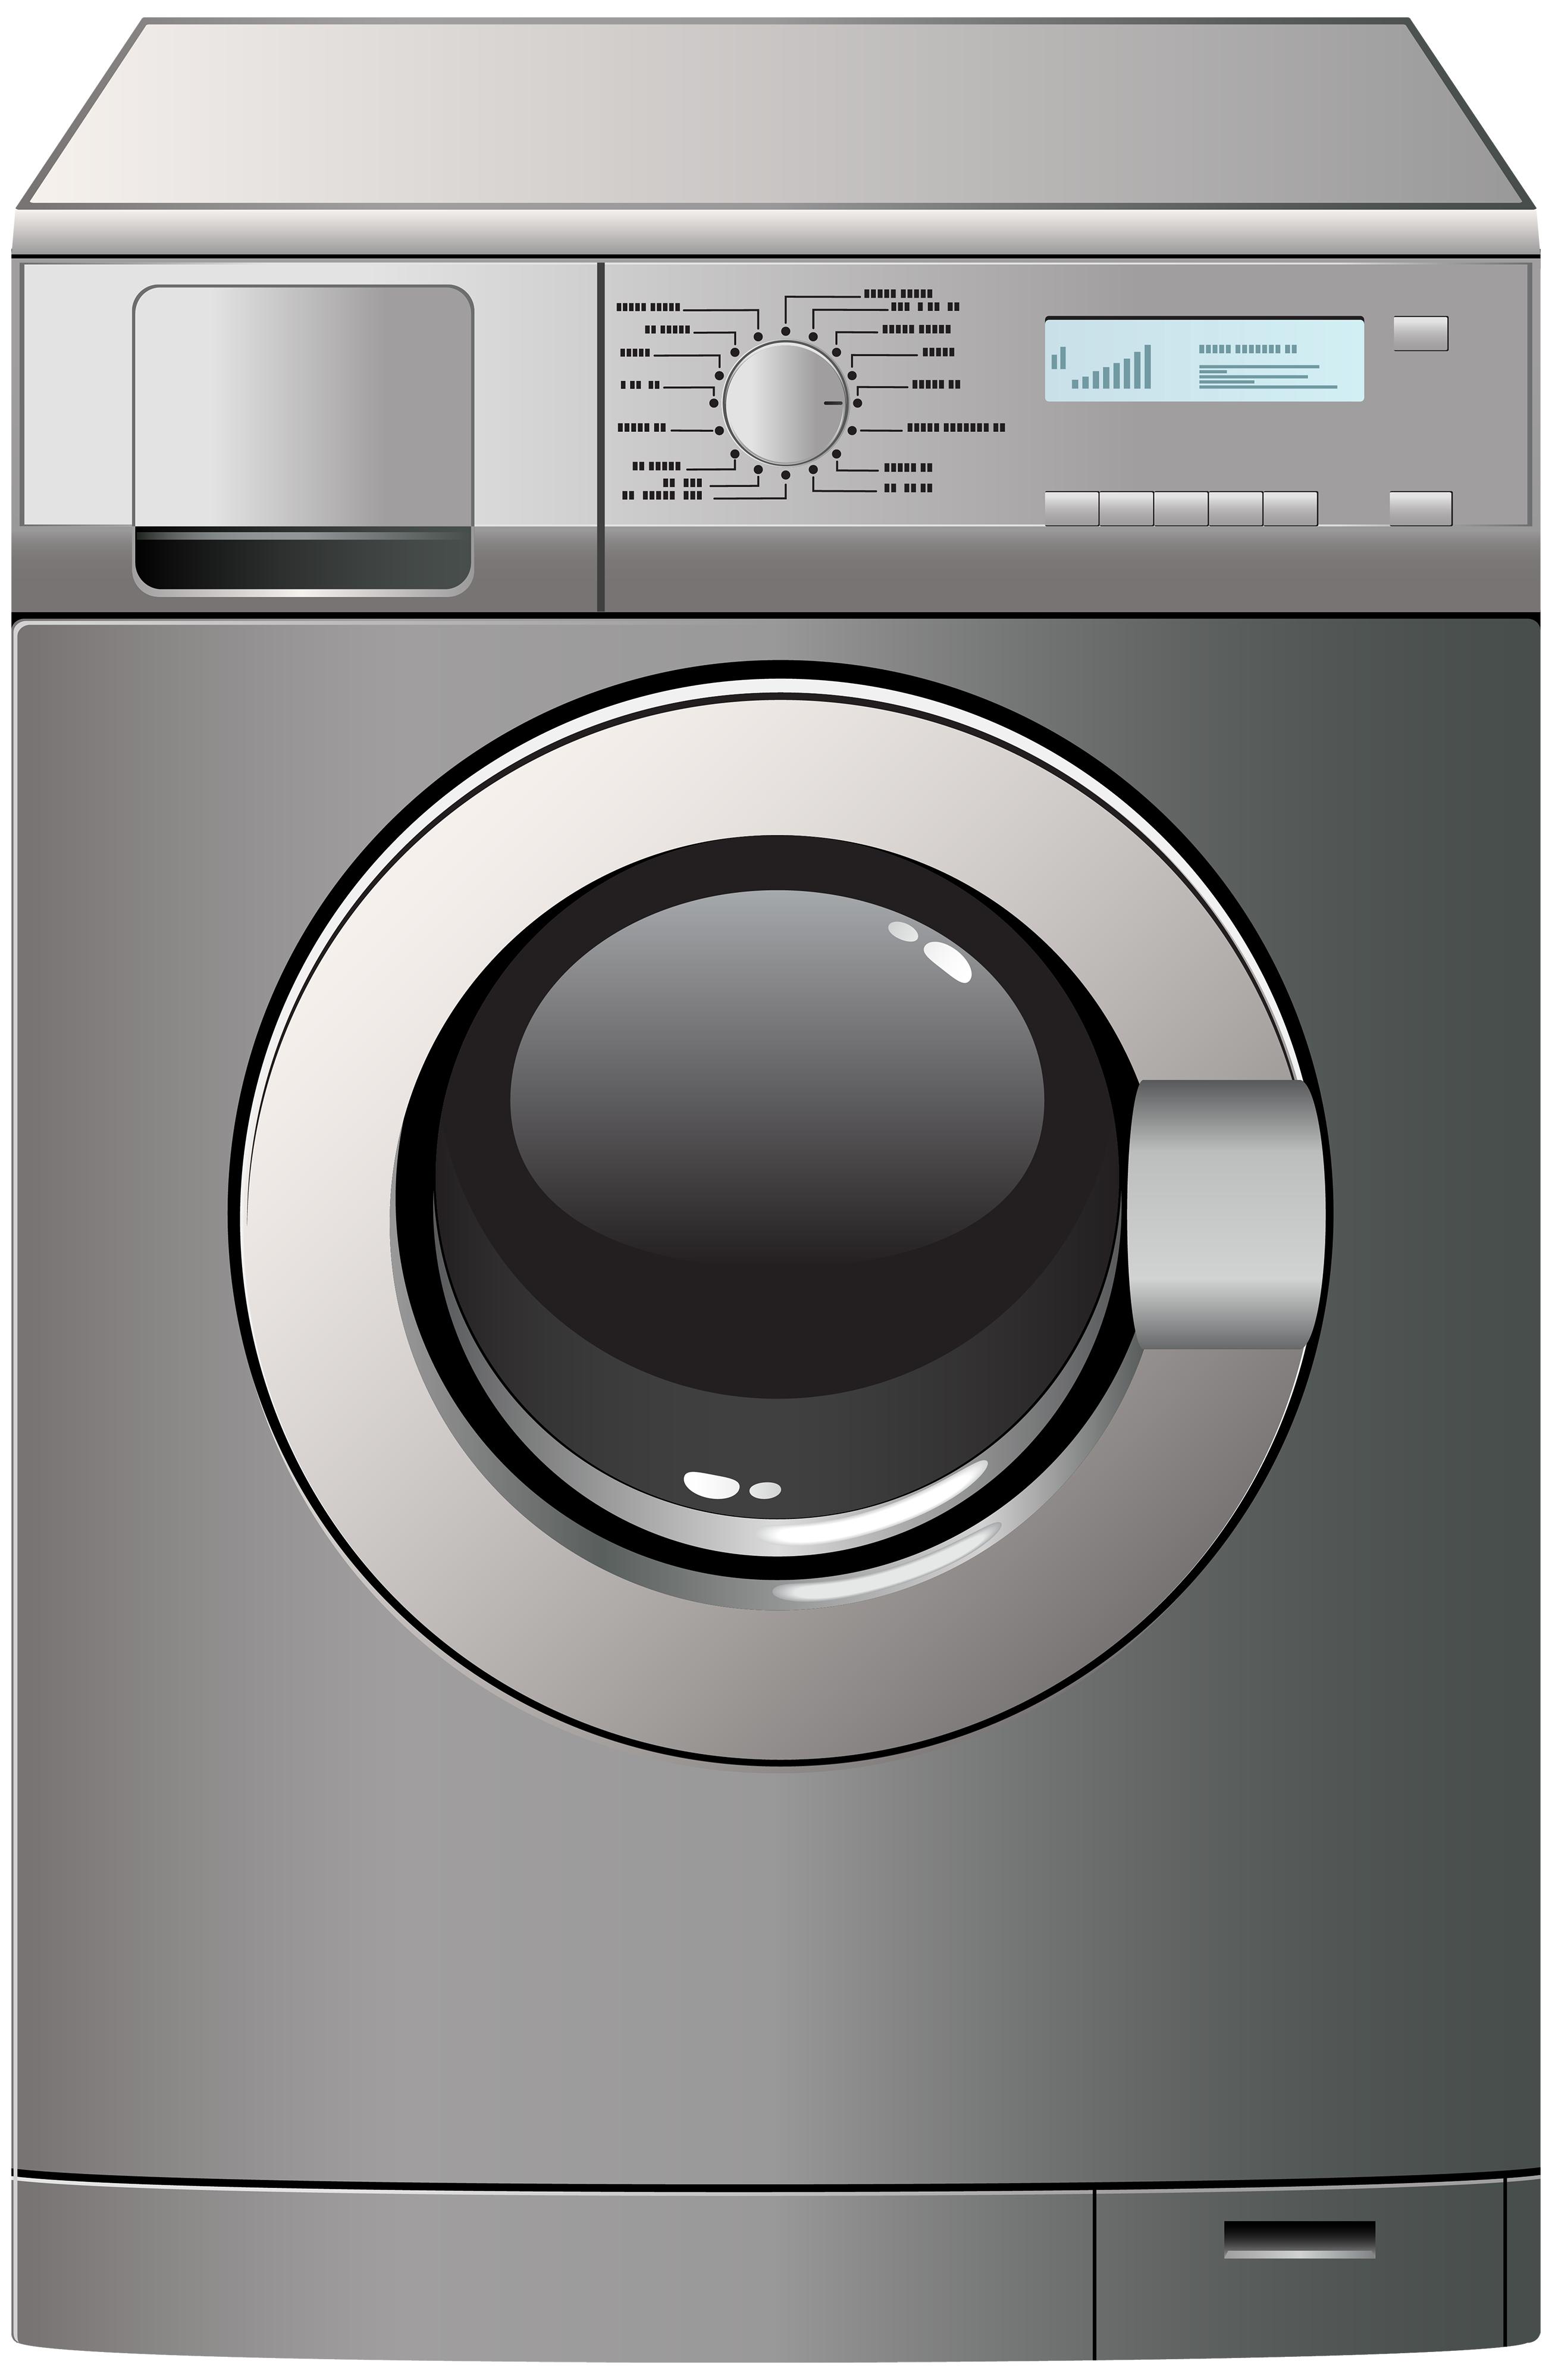 Washing machine clipart picture graphic library download Washing machine PNG images graphic library download